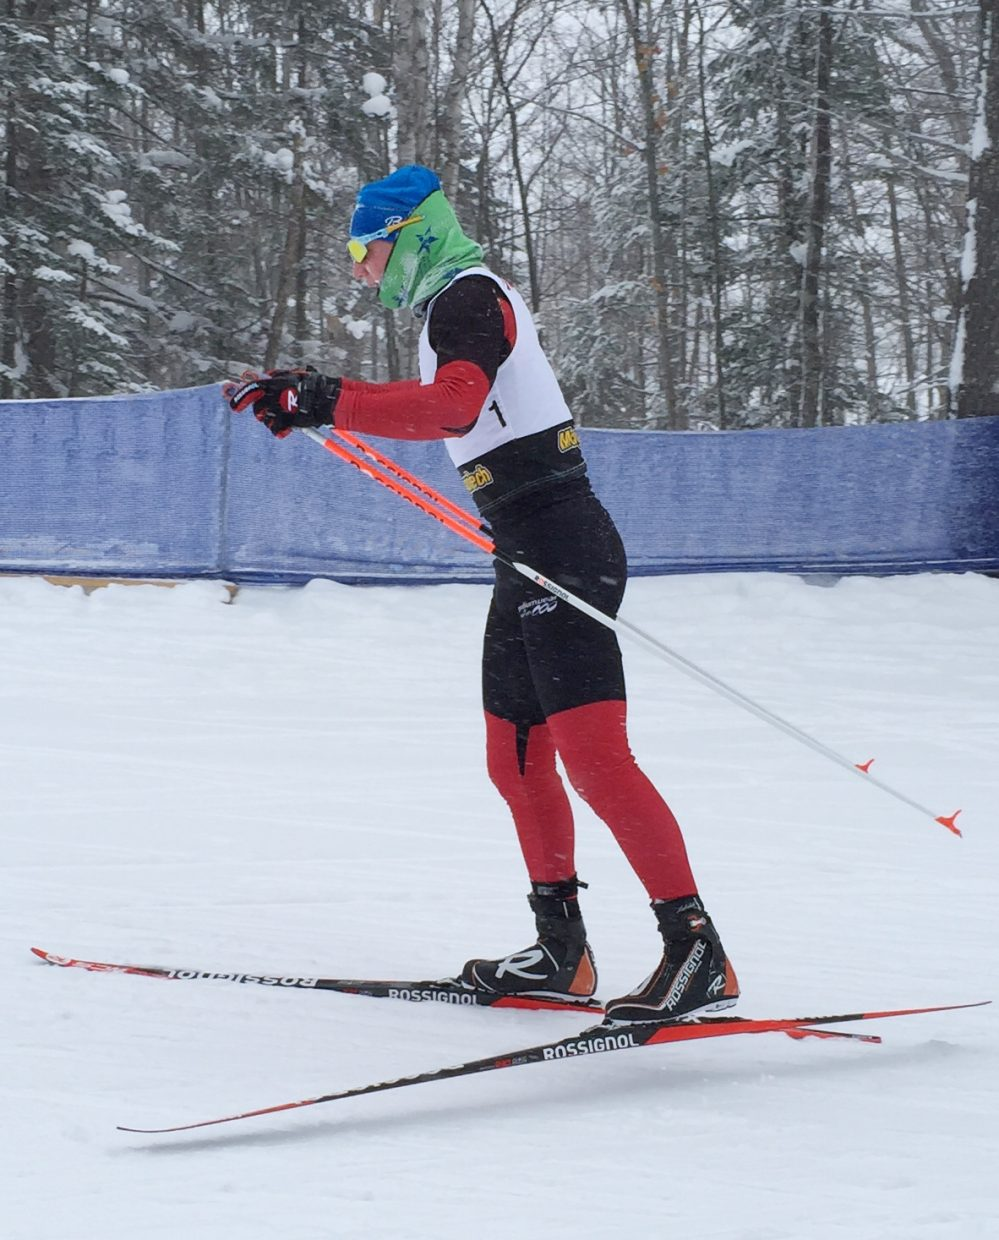 Lars Hannah skis Sunday at the USSA National Championships in Michigan. Hannah's strong results at the event could help him to the World Junior Championships team later this season.